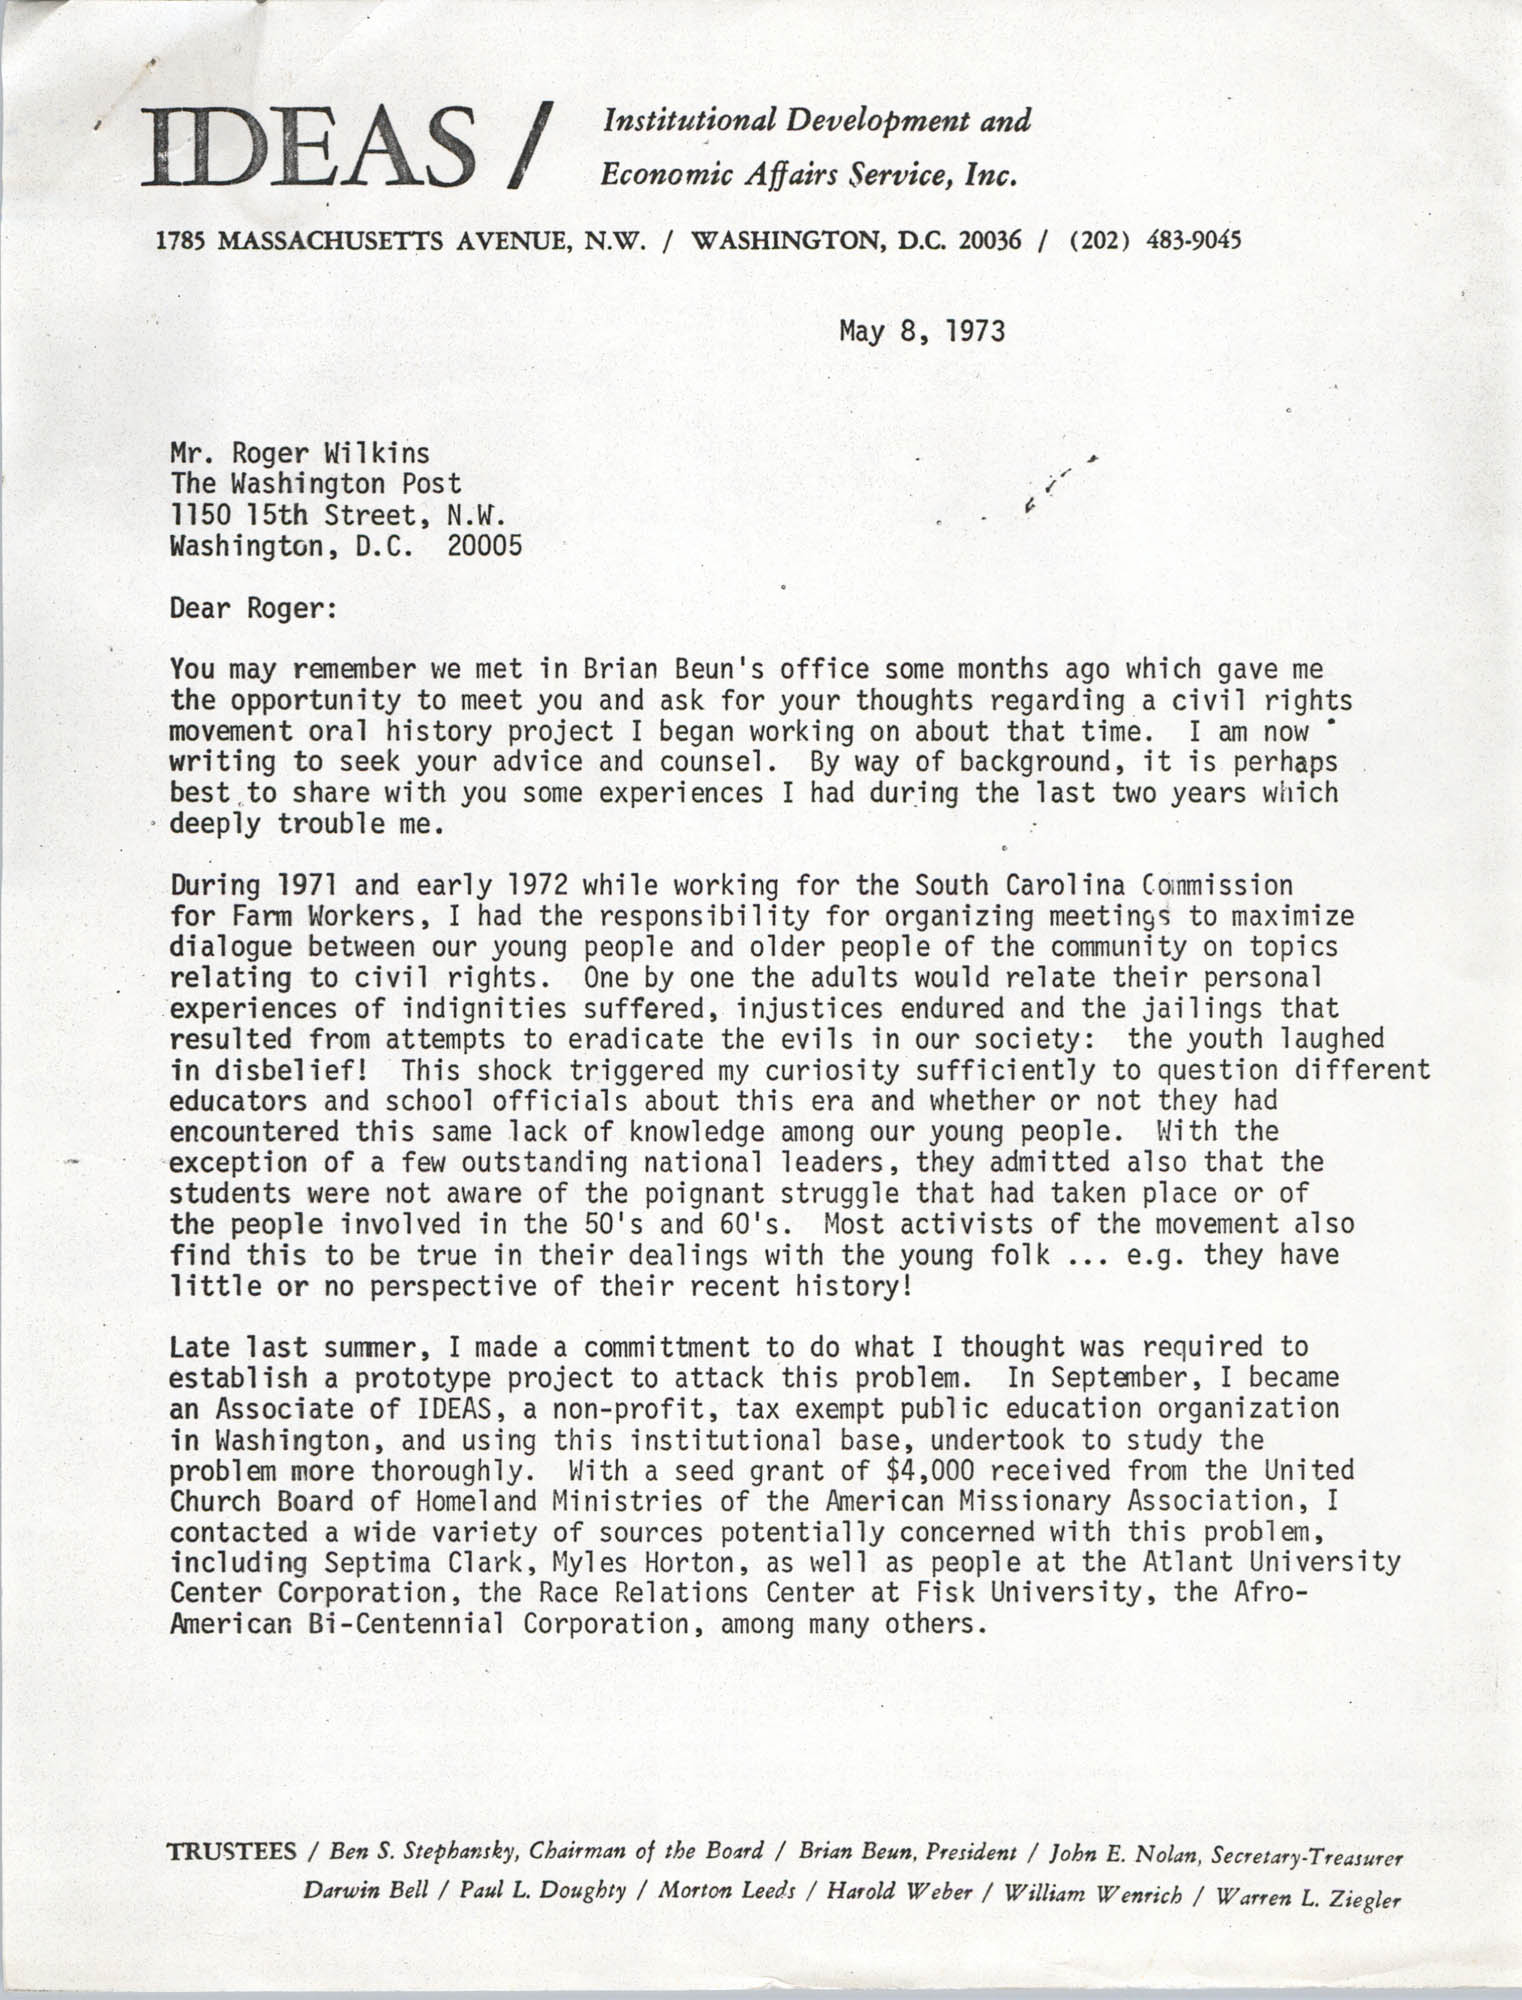 Letter from Bernice Robinson to Roger Wilkins, May 8, 1973